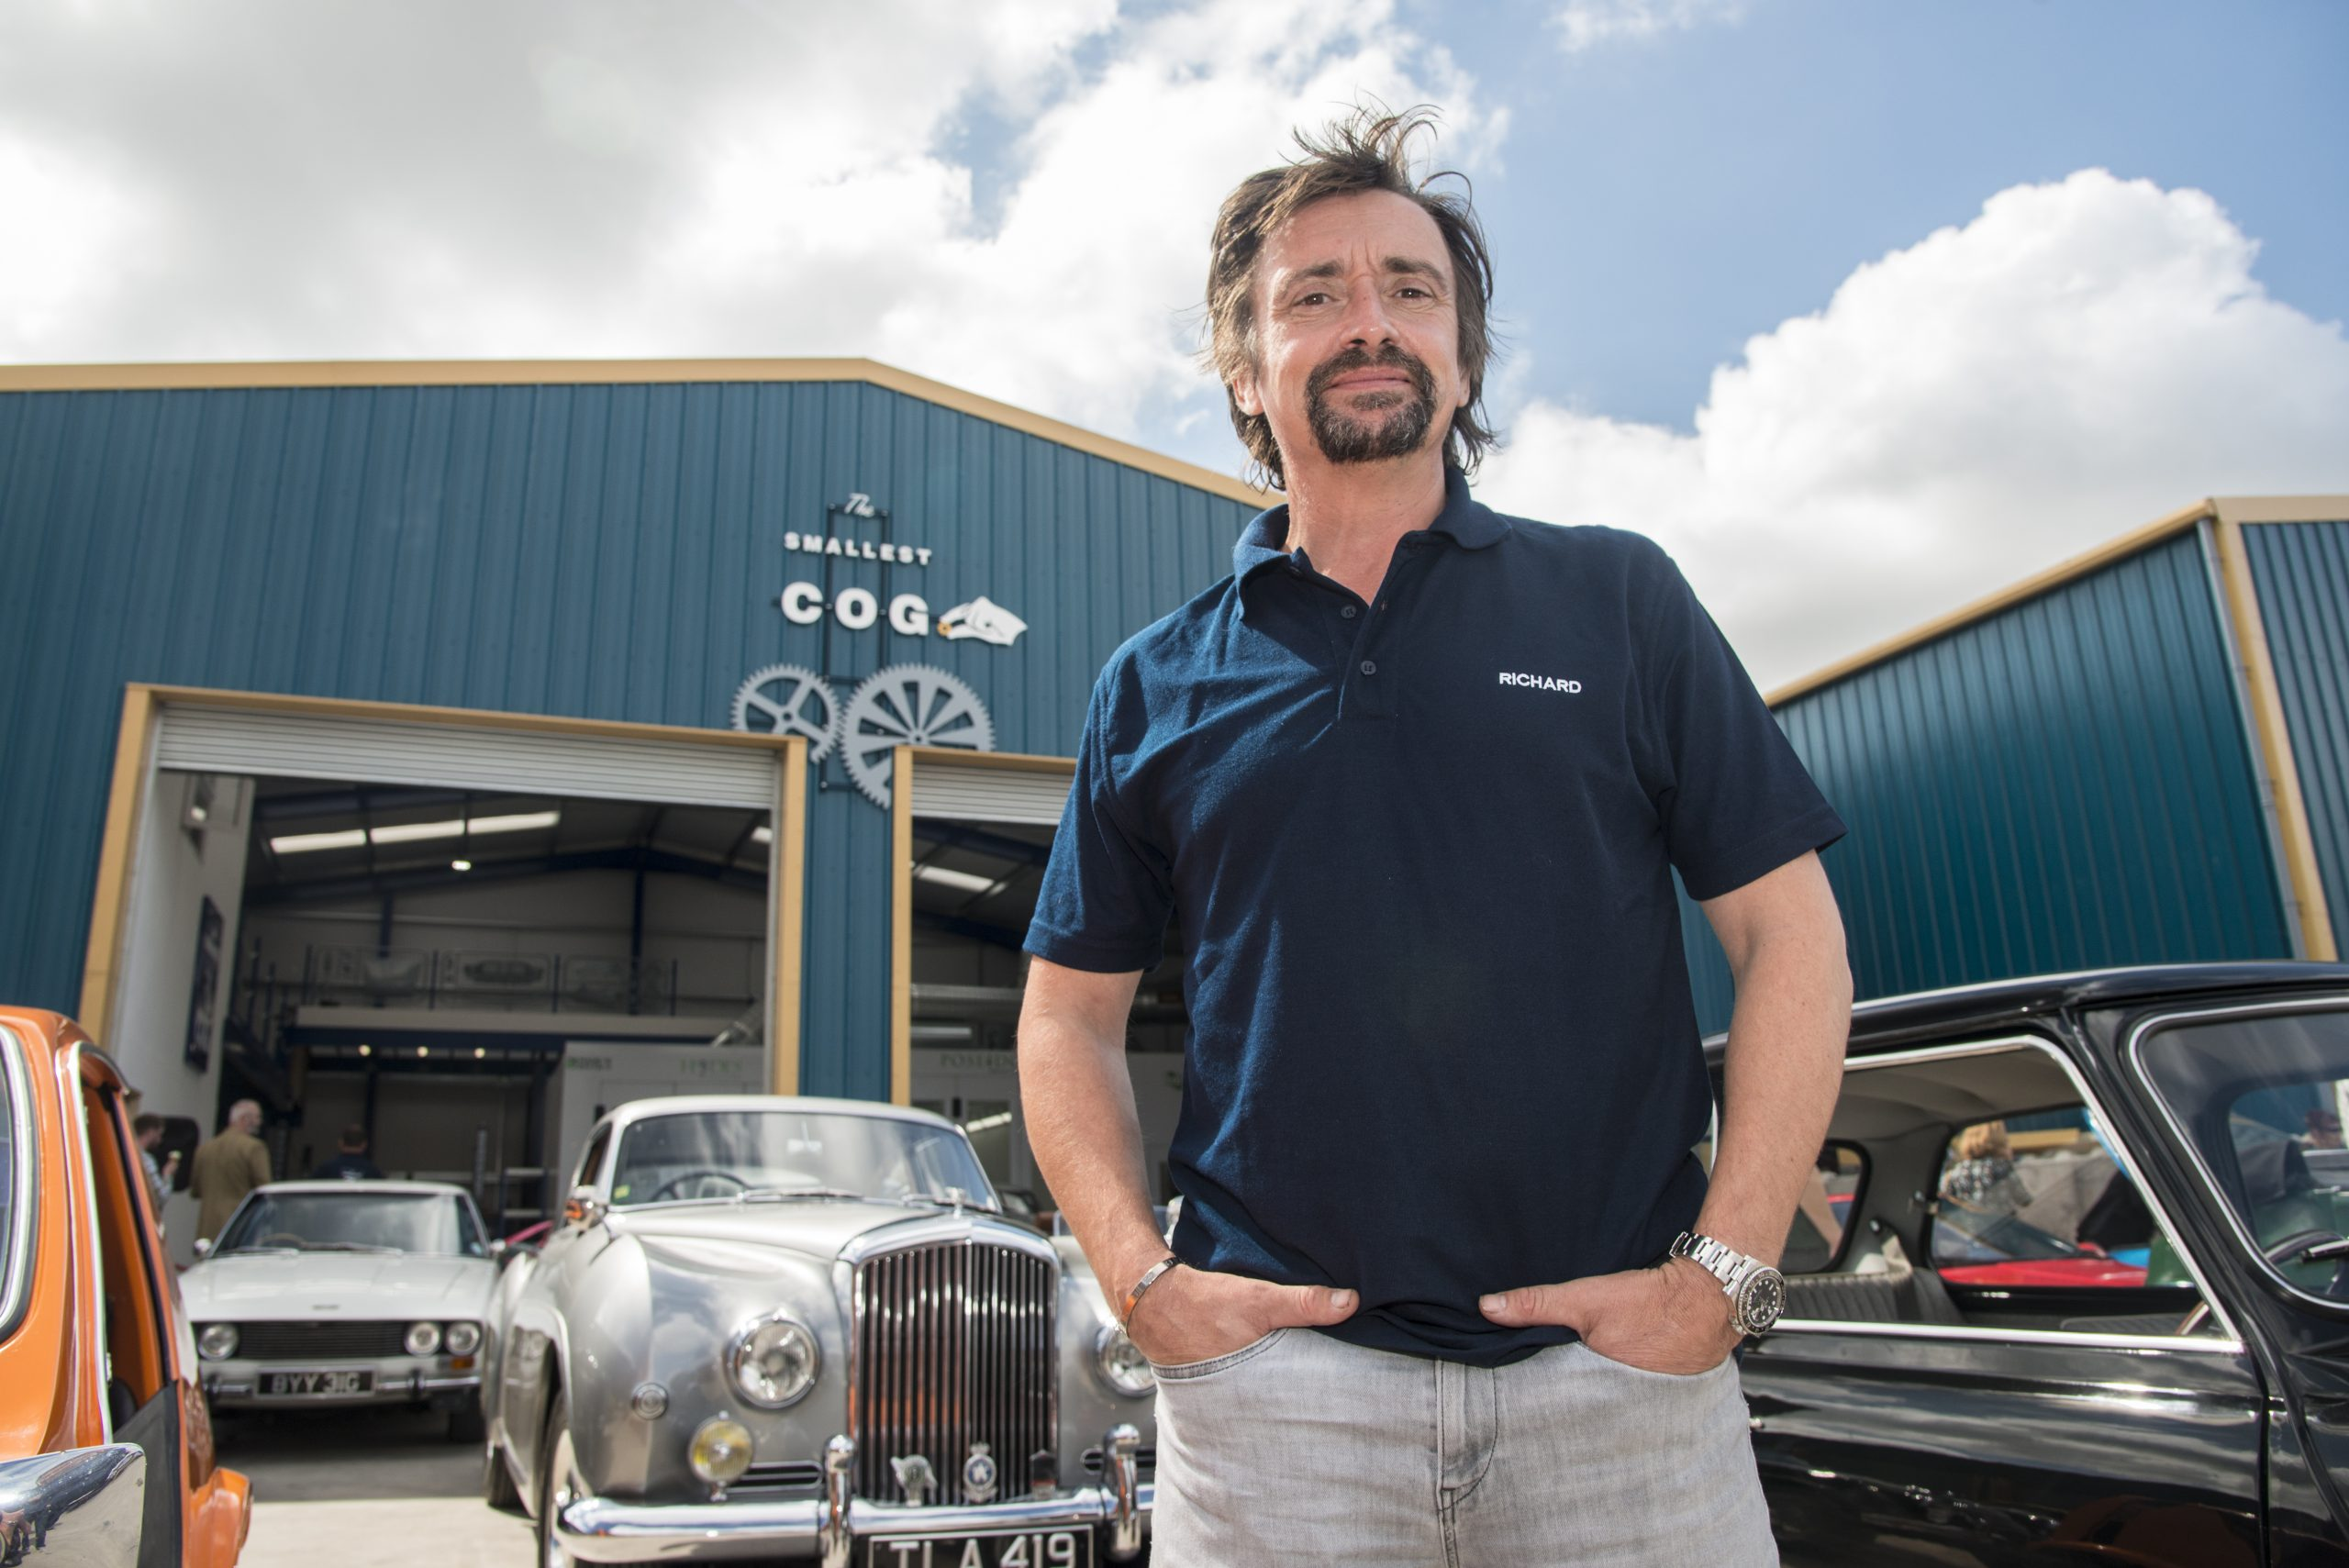 Angle grinders and spray guns at the ready! Richard Hammond's Workshop TV show hits screens on 18 October